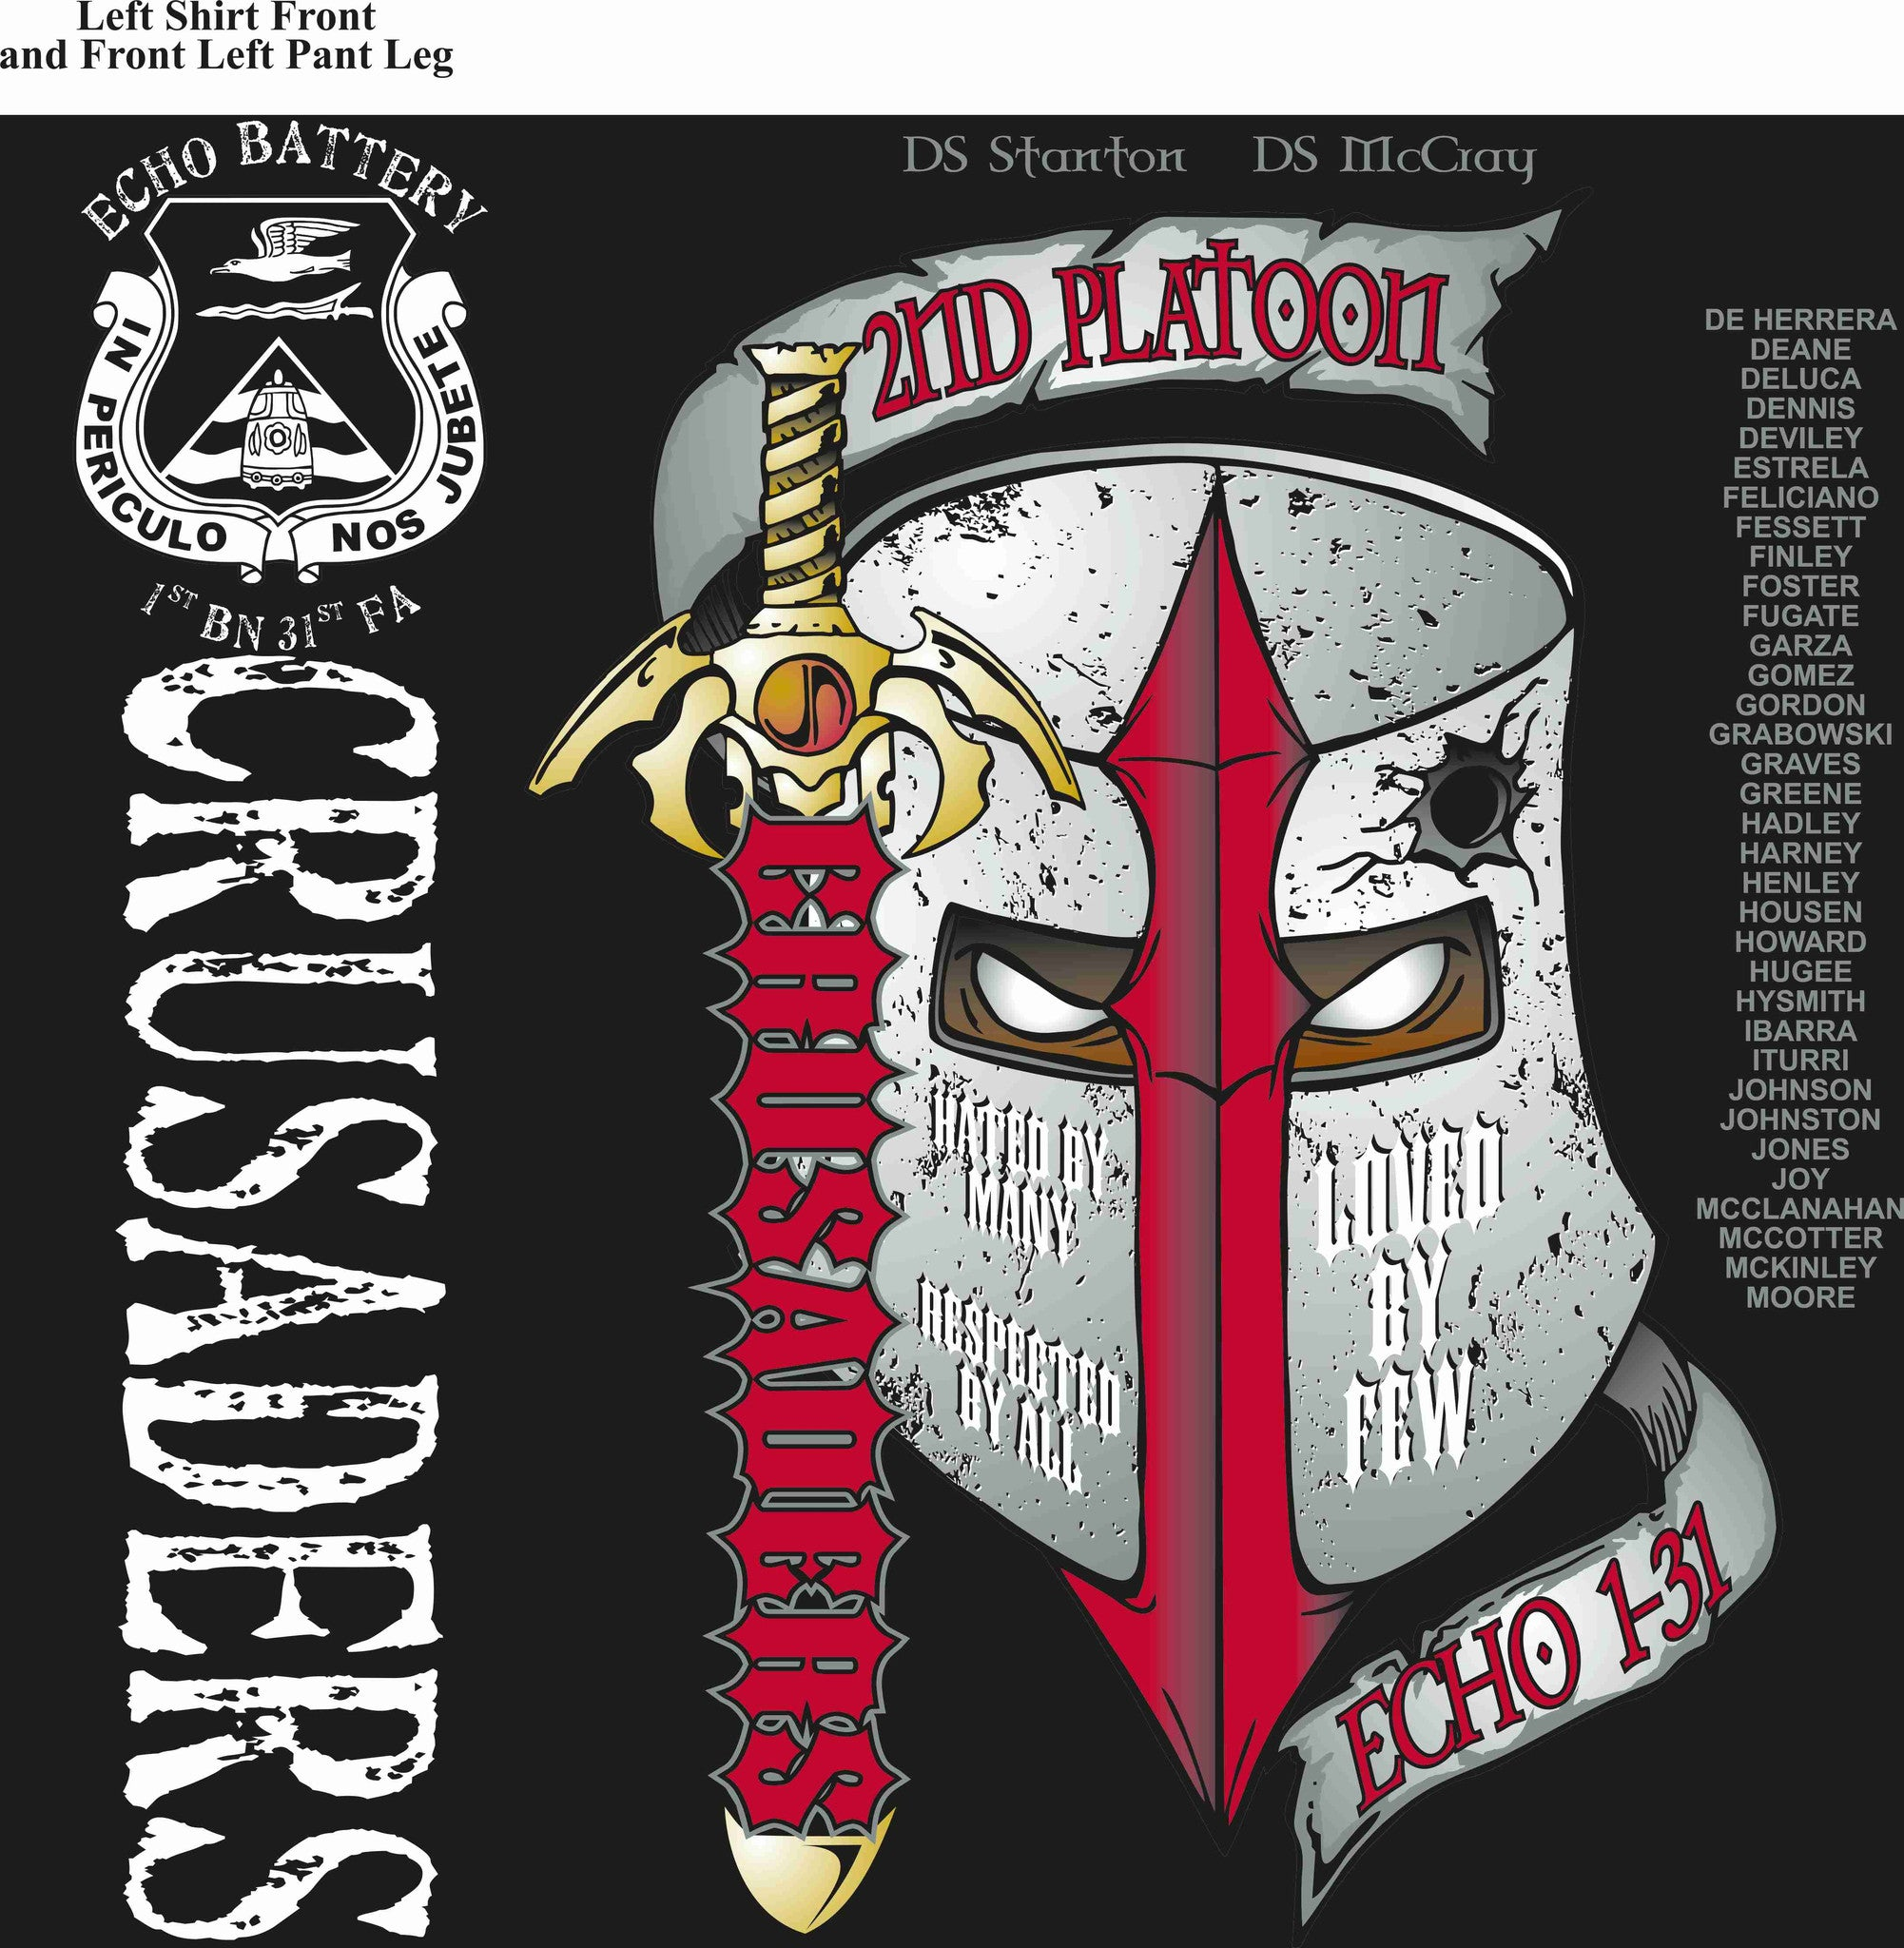 PLATOON SHIRTS ECHO 1st 31st CRUSADERS NOV 2015